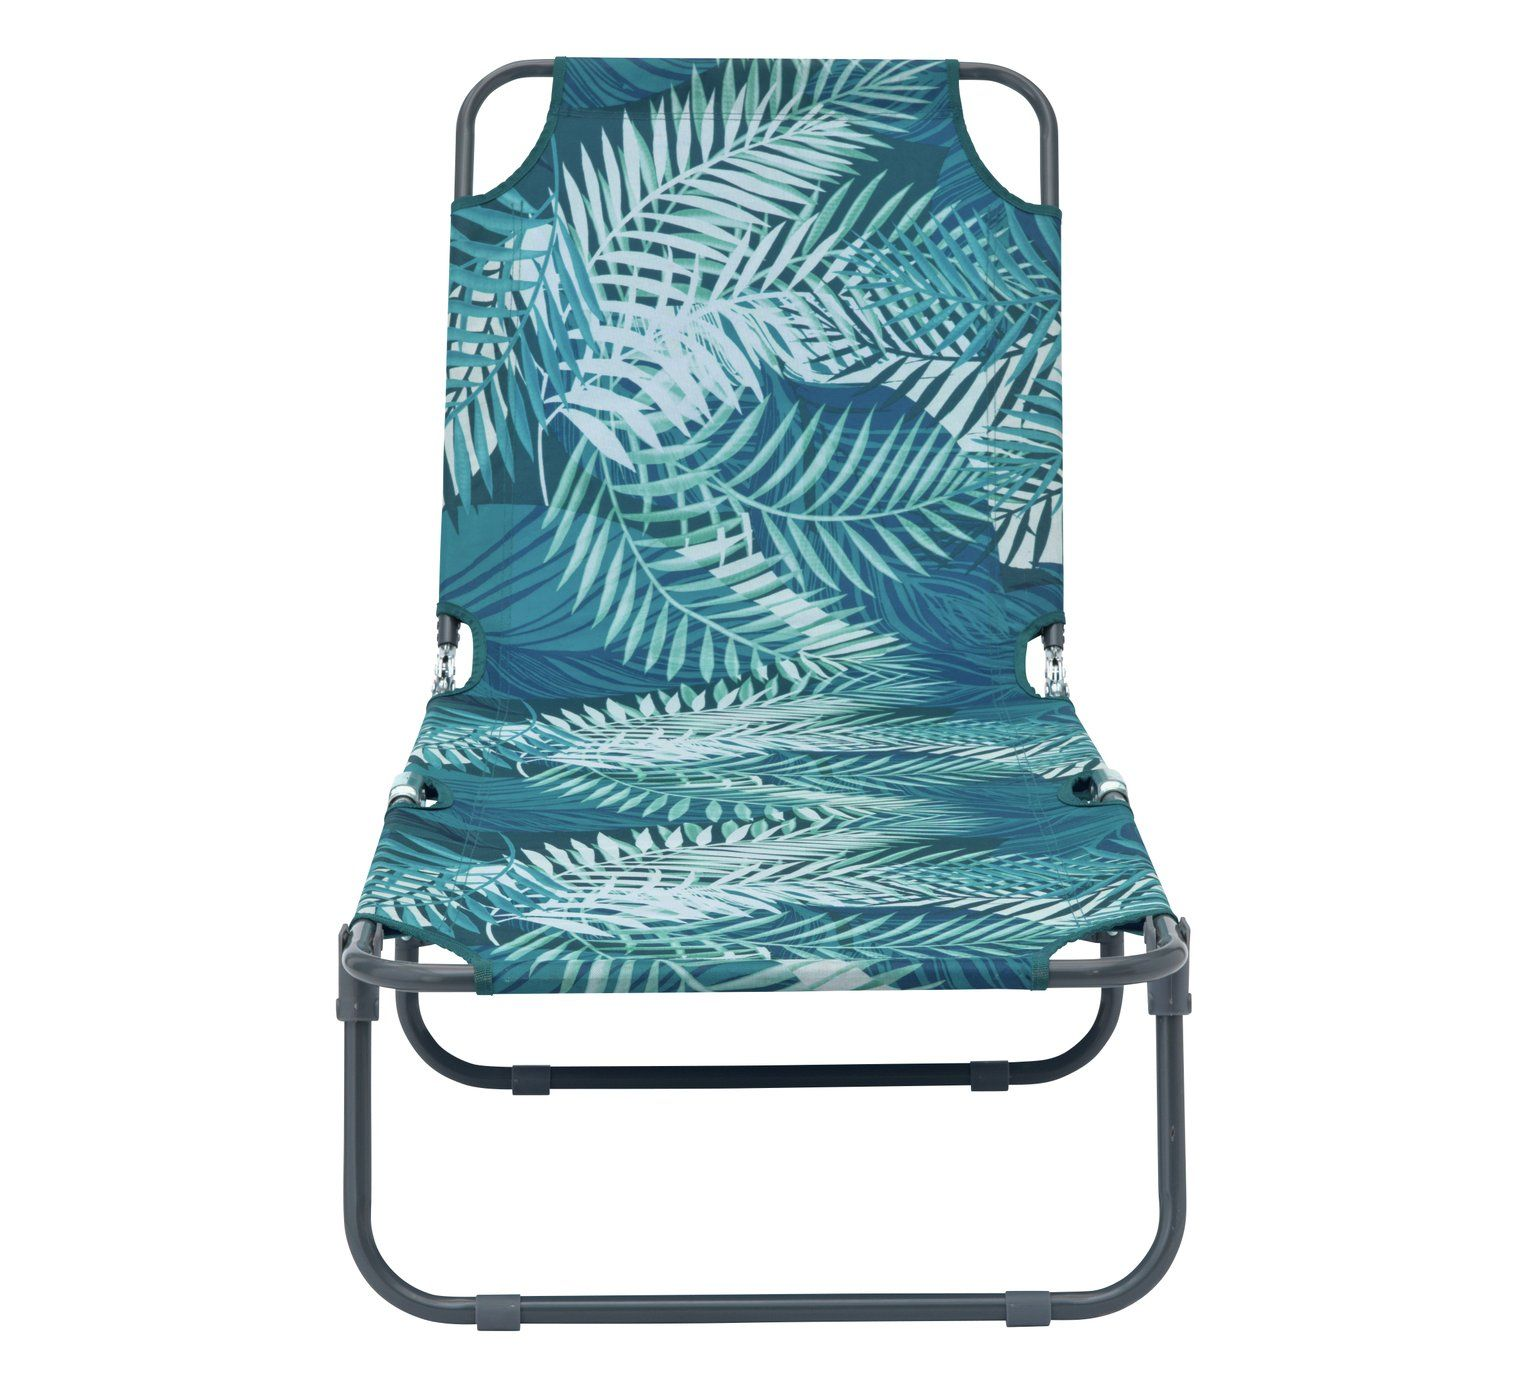 Buy Folding Sunbed Palm Garden chairs and sun loungers